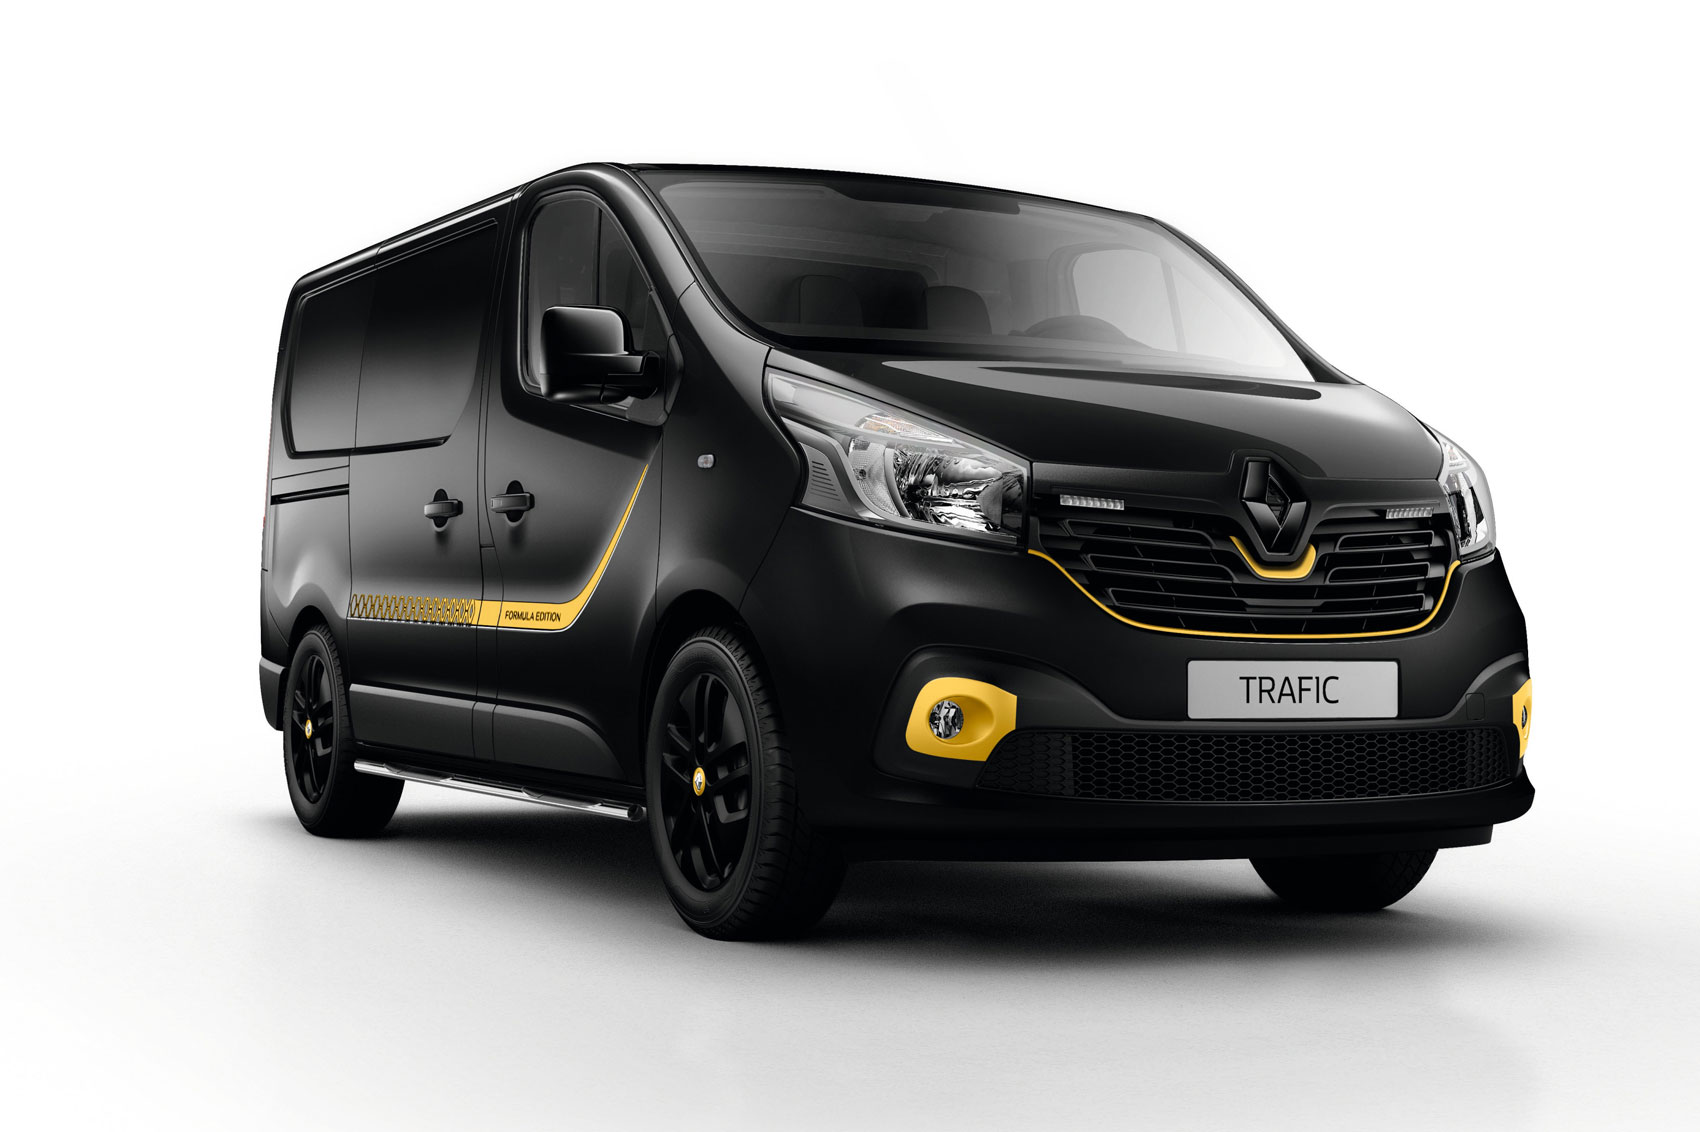 renault prices sporty new formula edition vans parkers. Black Bedroom Furniture Sets. Home Design Ideas